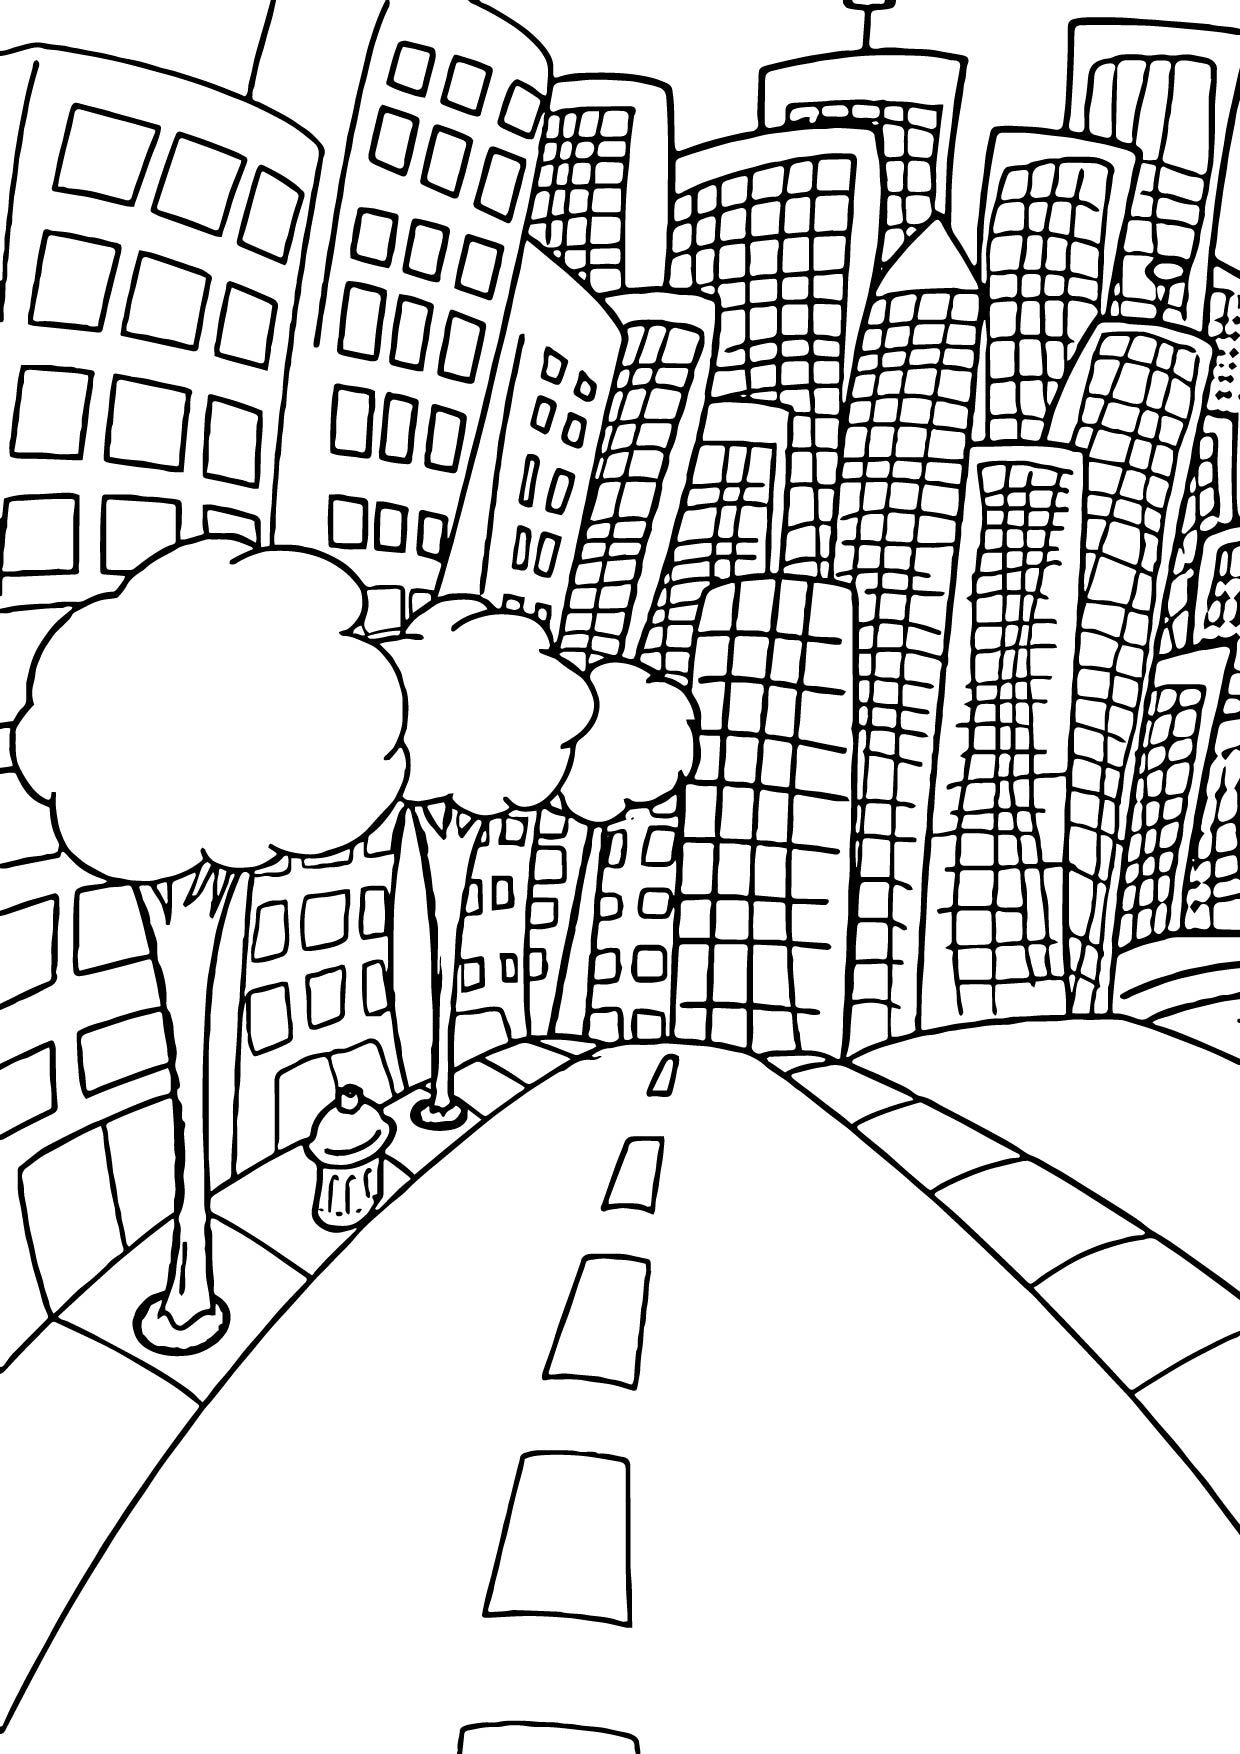 1240x1754 Best New York Skyline Drawing Outline At Getdrawings For Pic